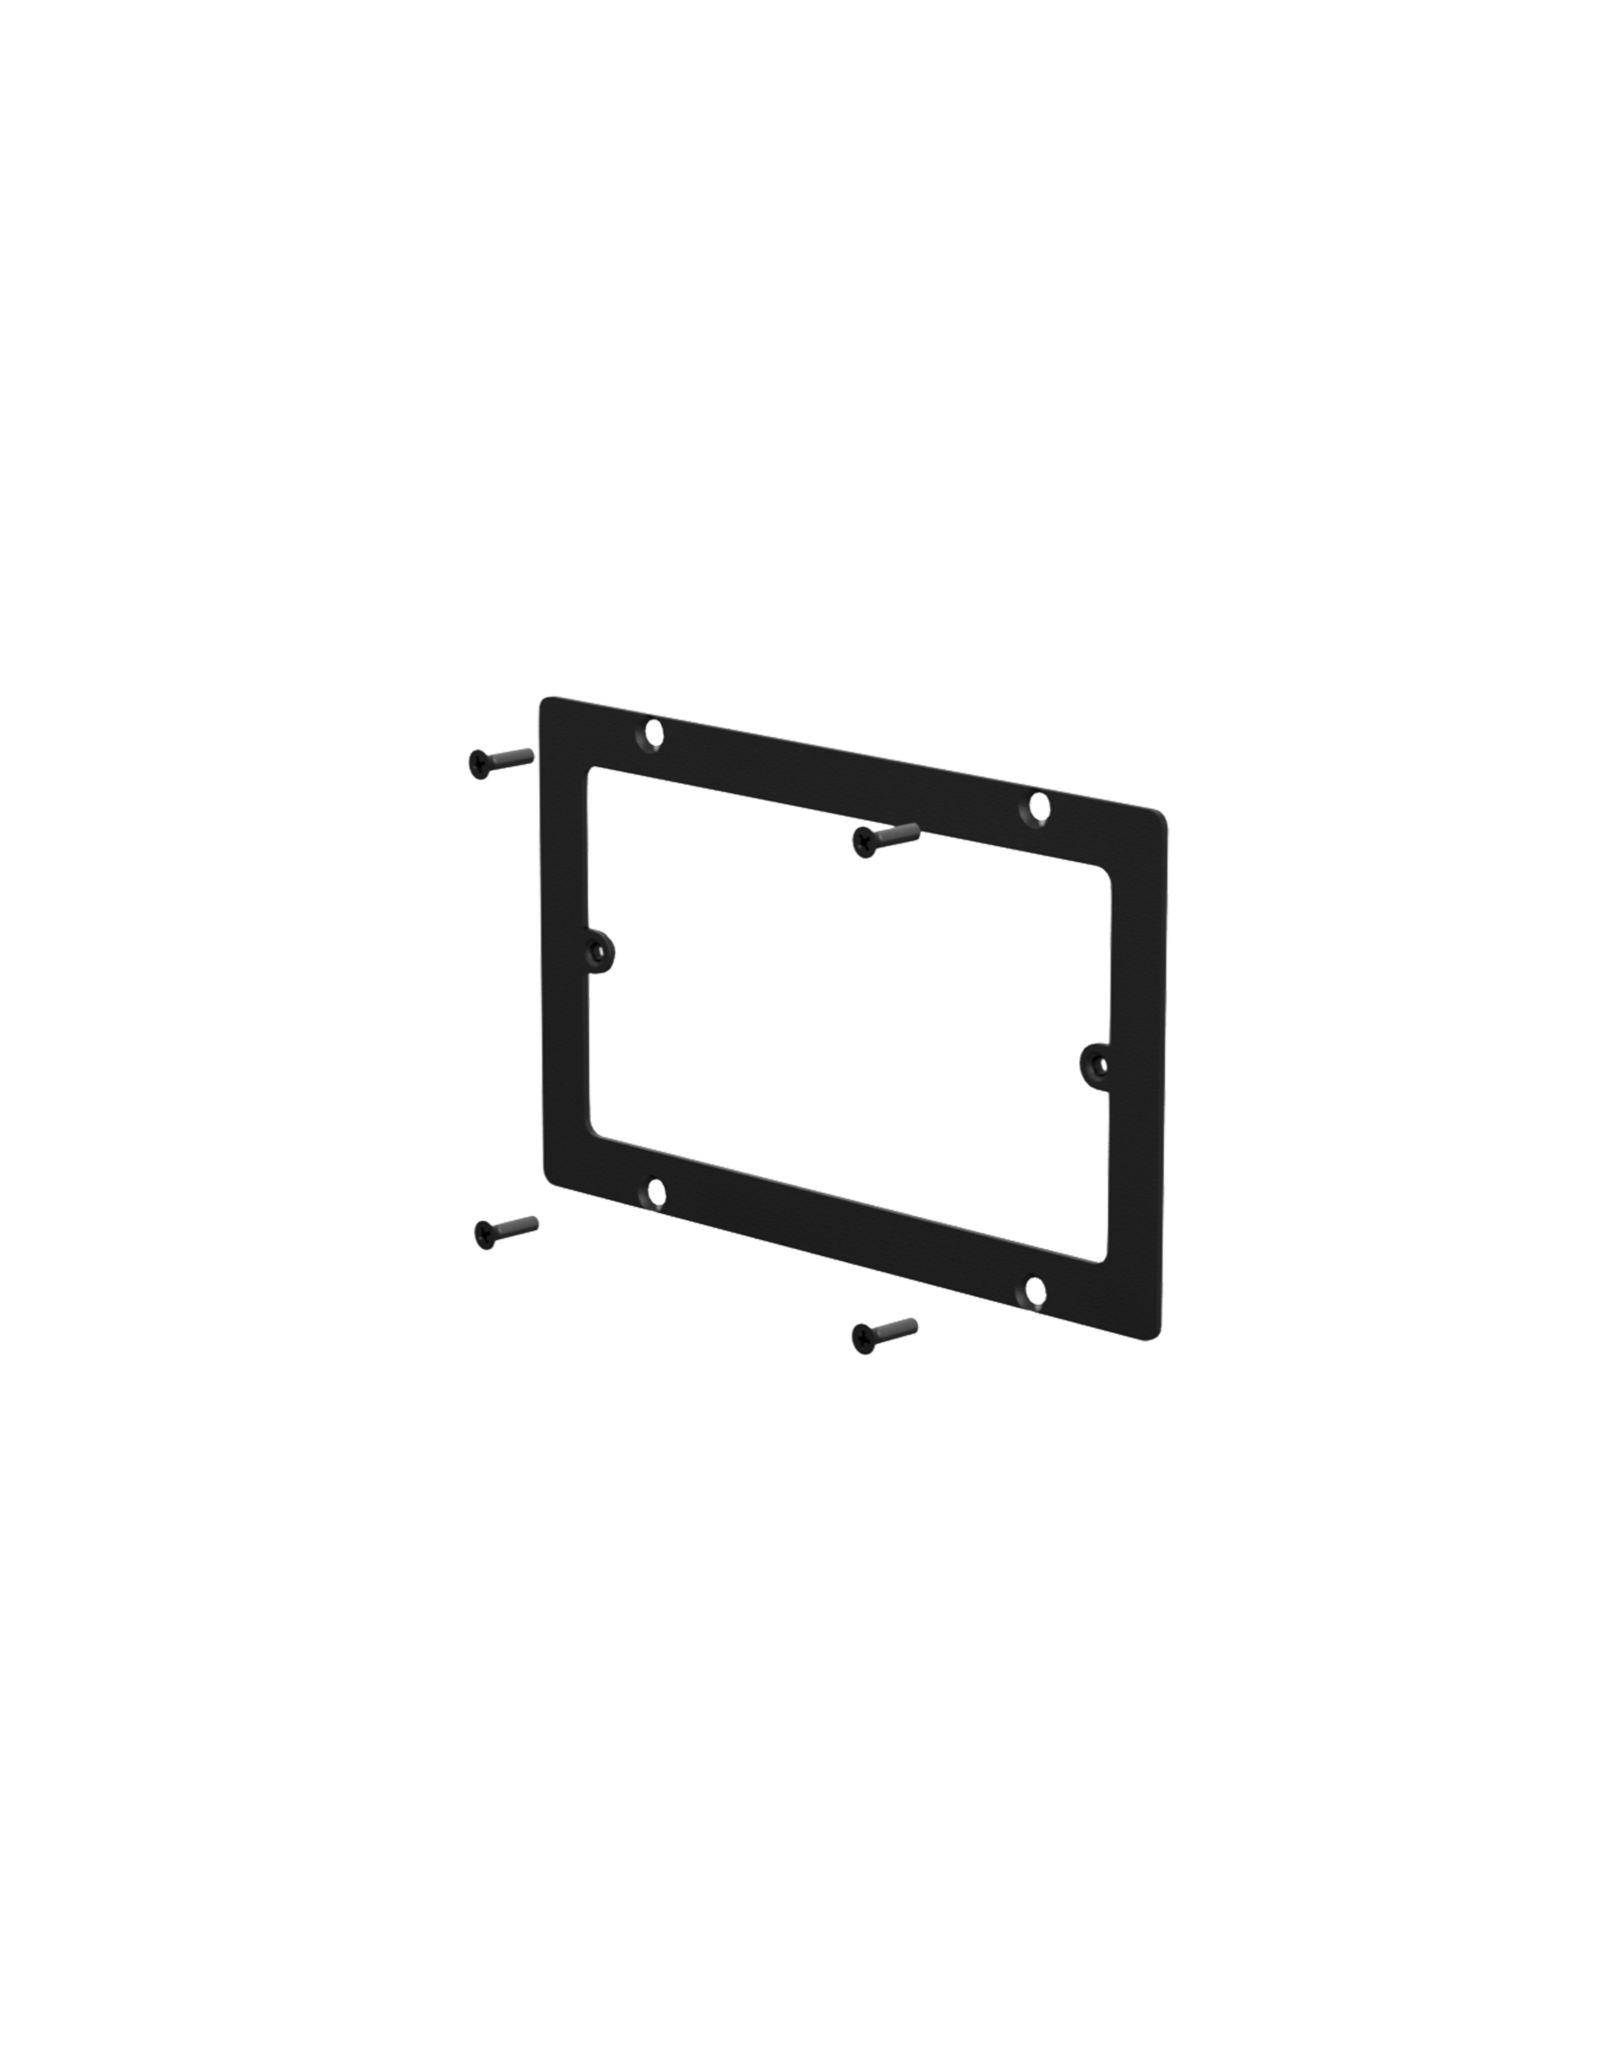 Audac Adapter frame for WB50 to 3-gang US standard